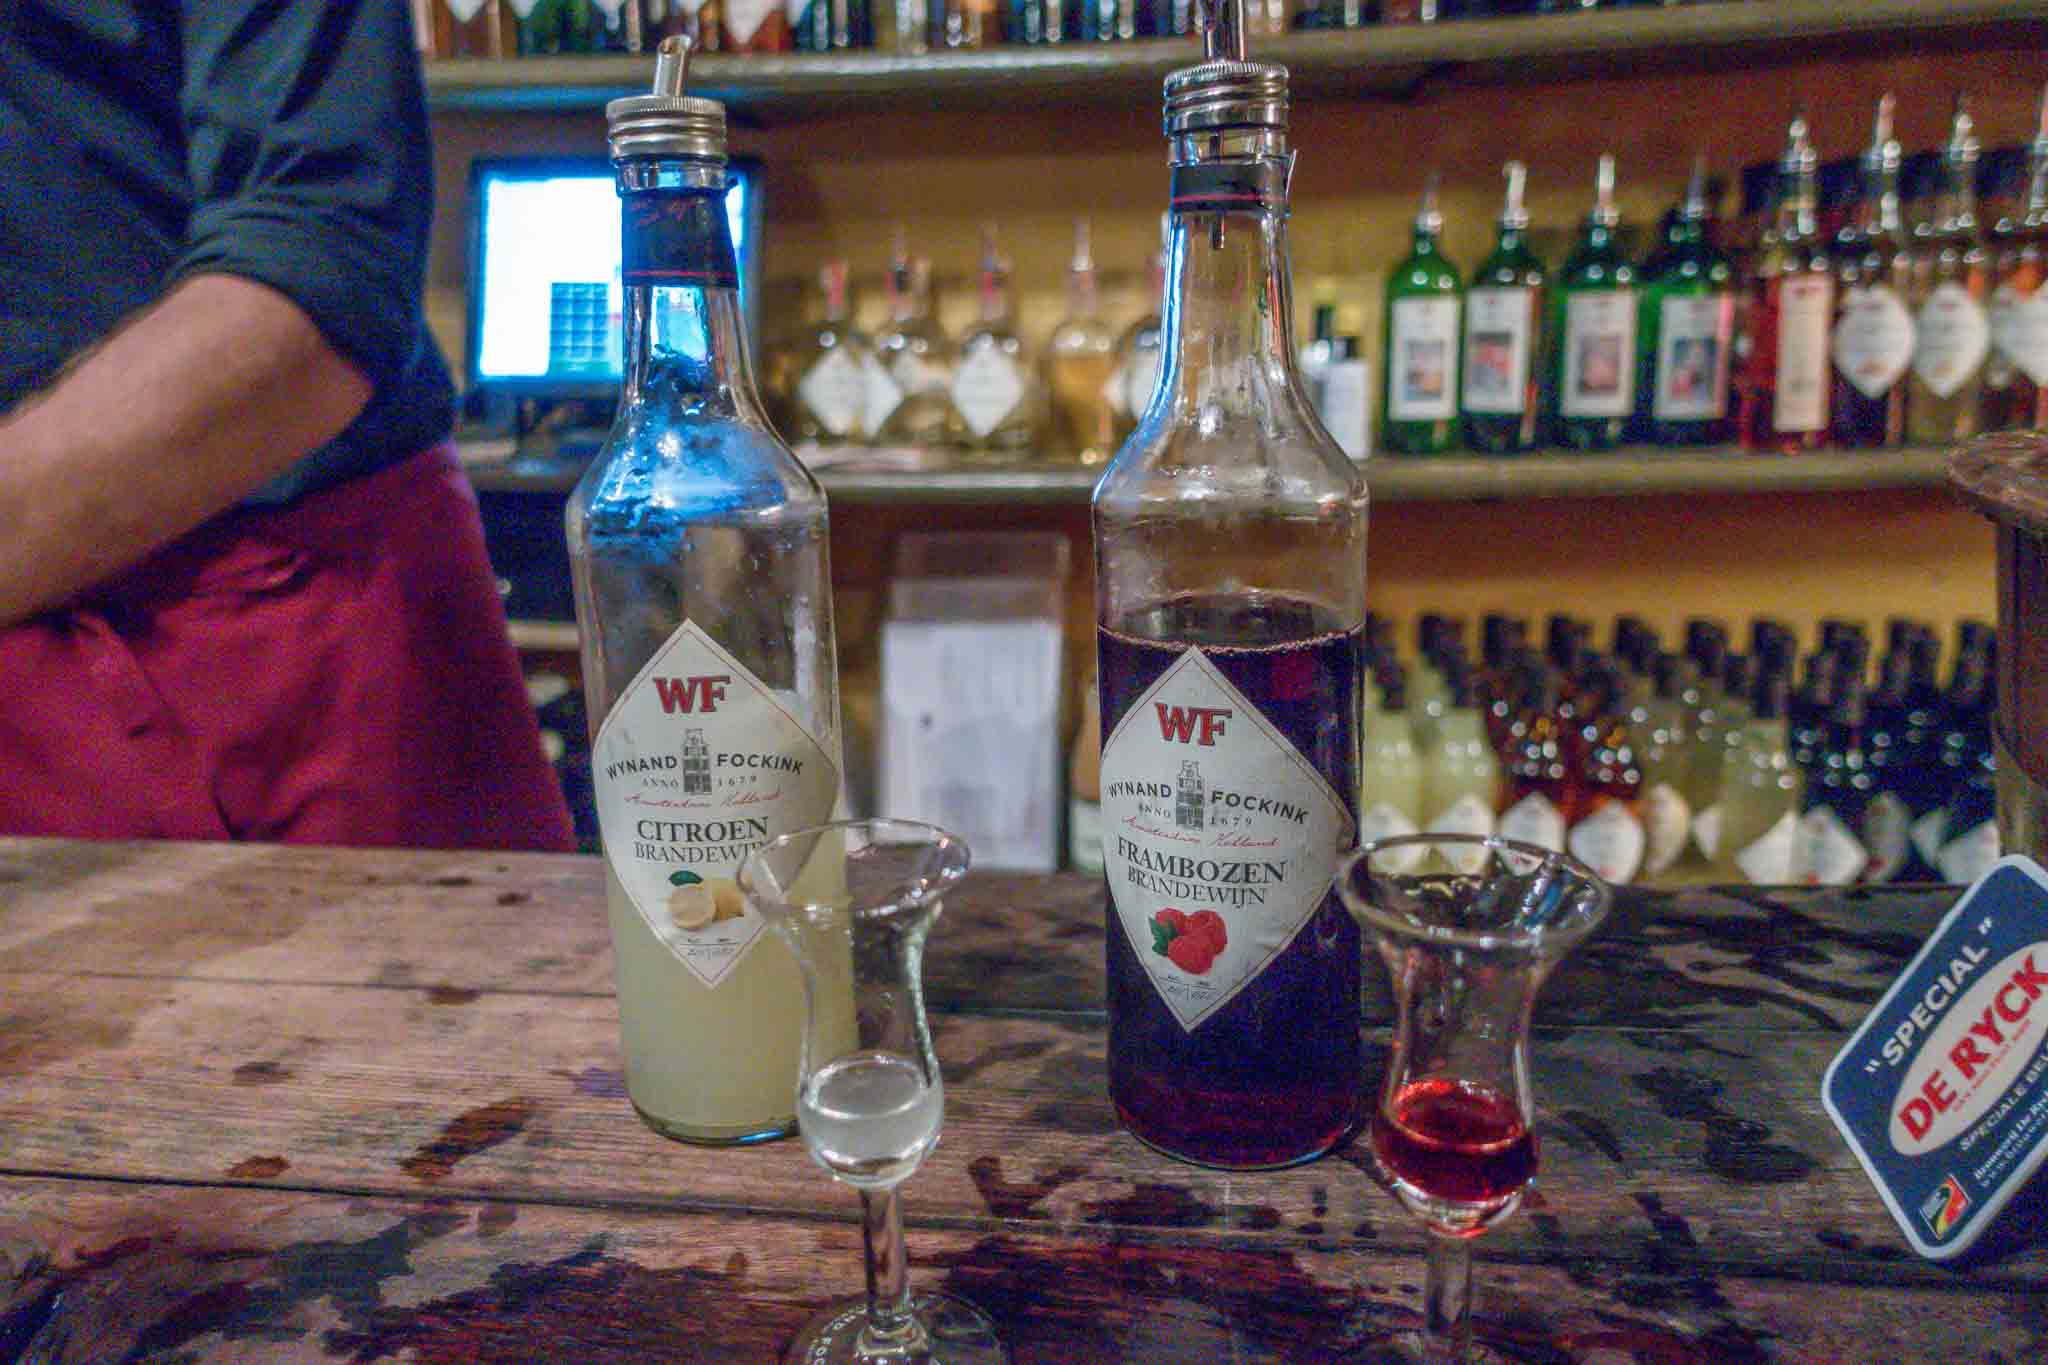 Trying one of the many kinds of liqueurs and genevers is one of the popular Amsterdam activities